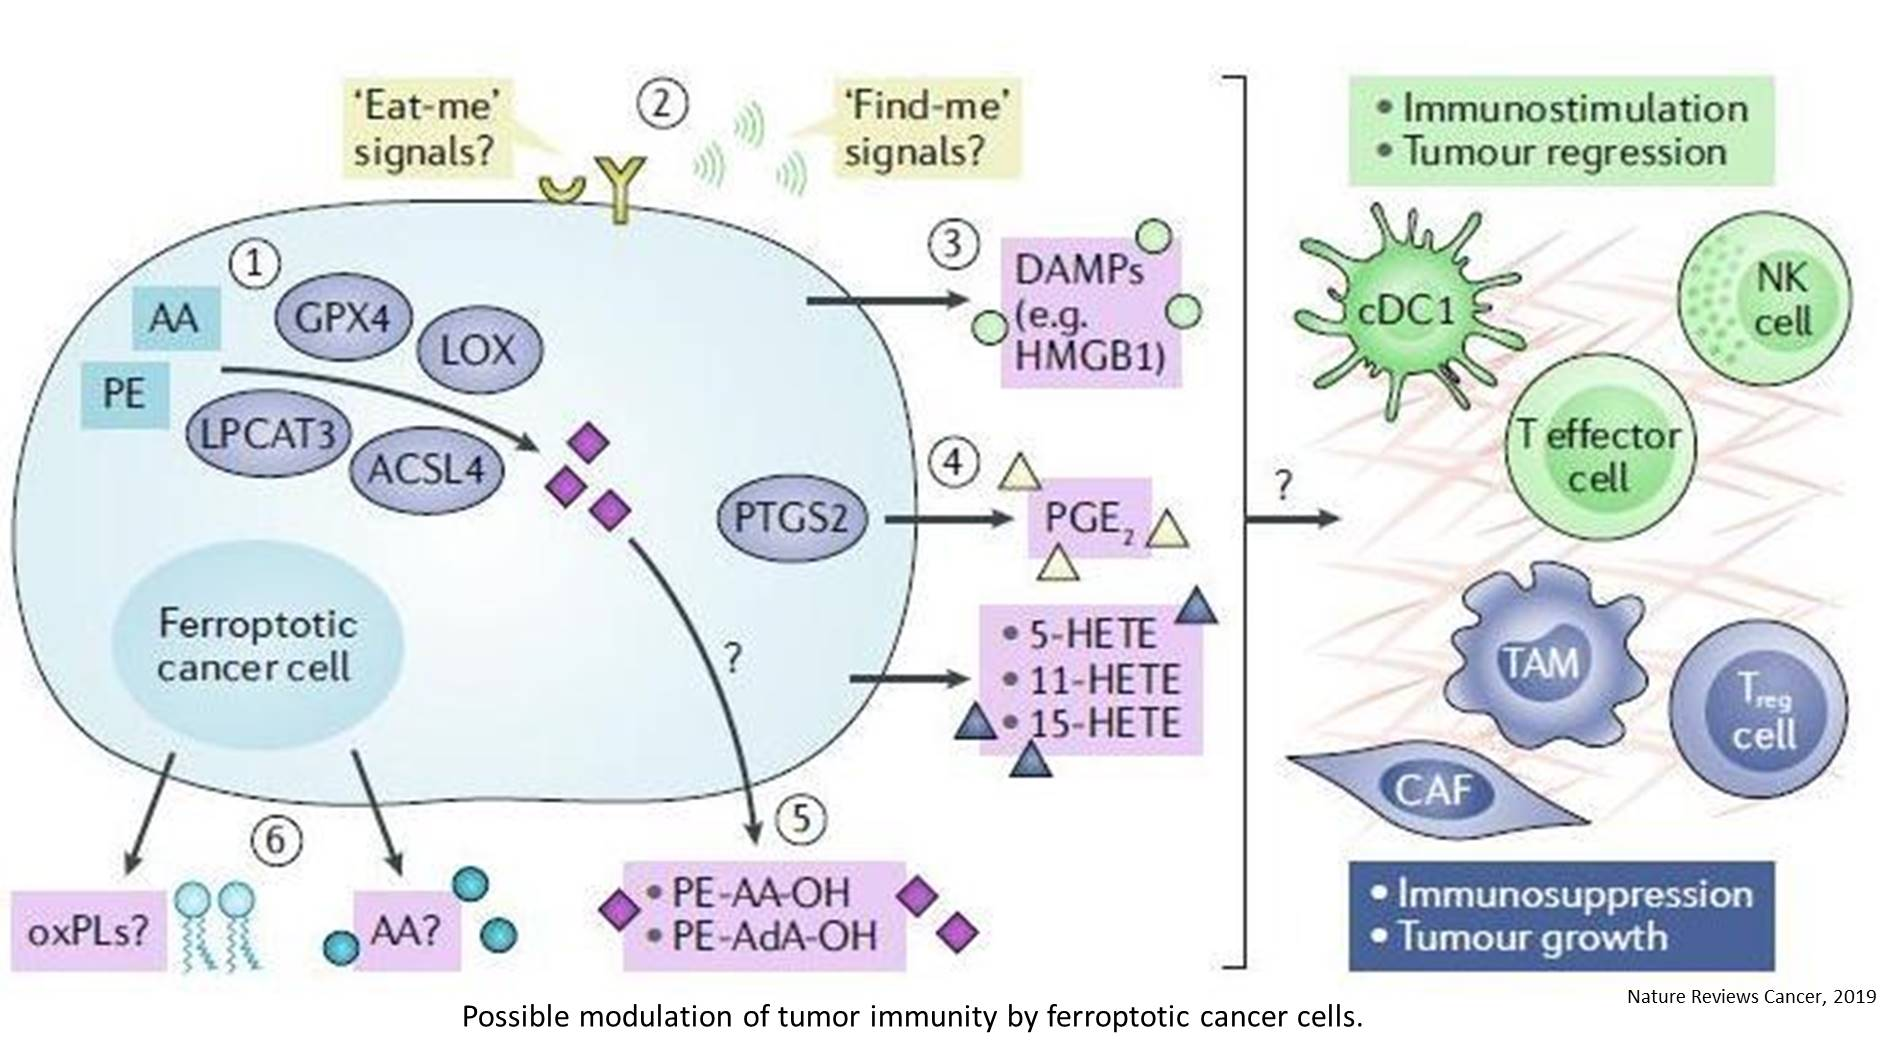 Role of ferroptosis in the development of cancer